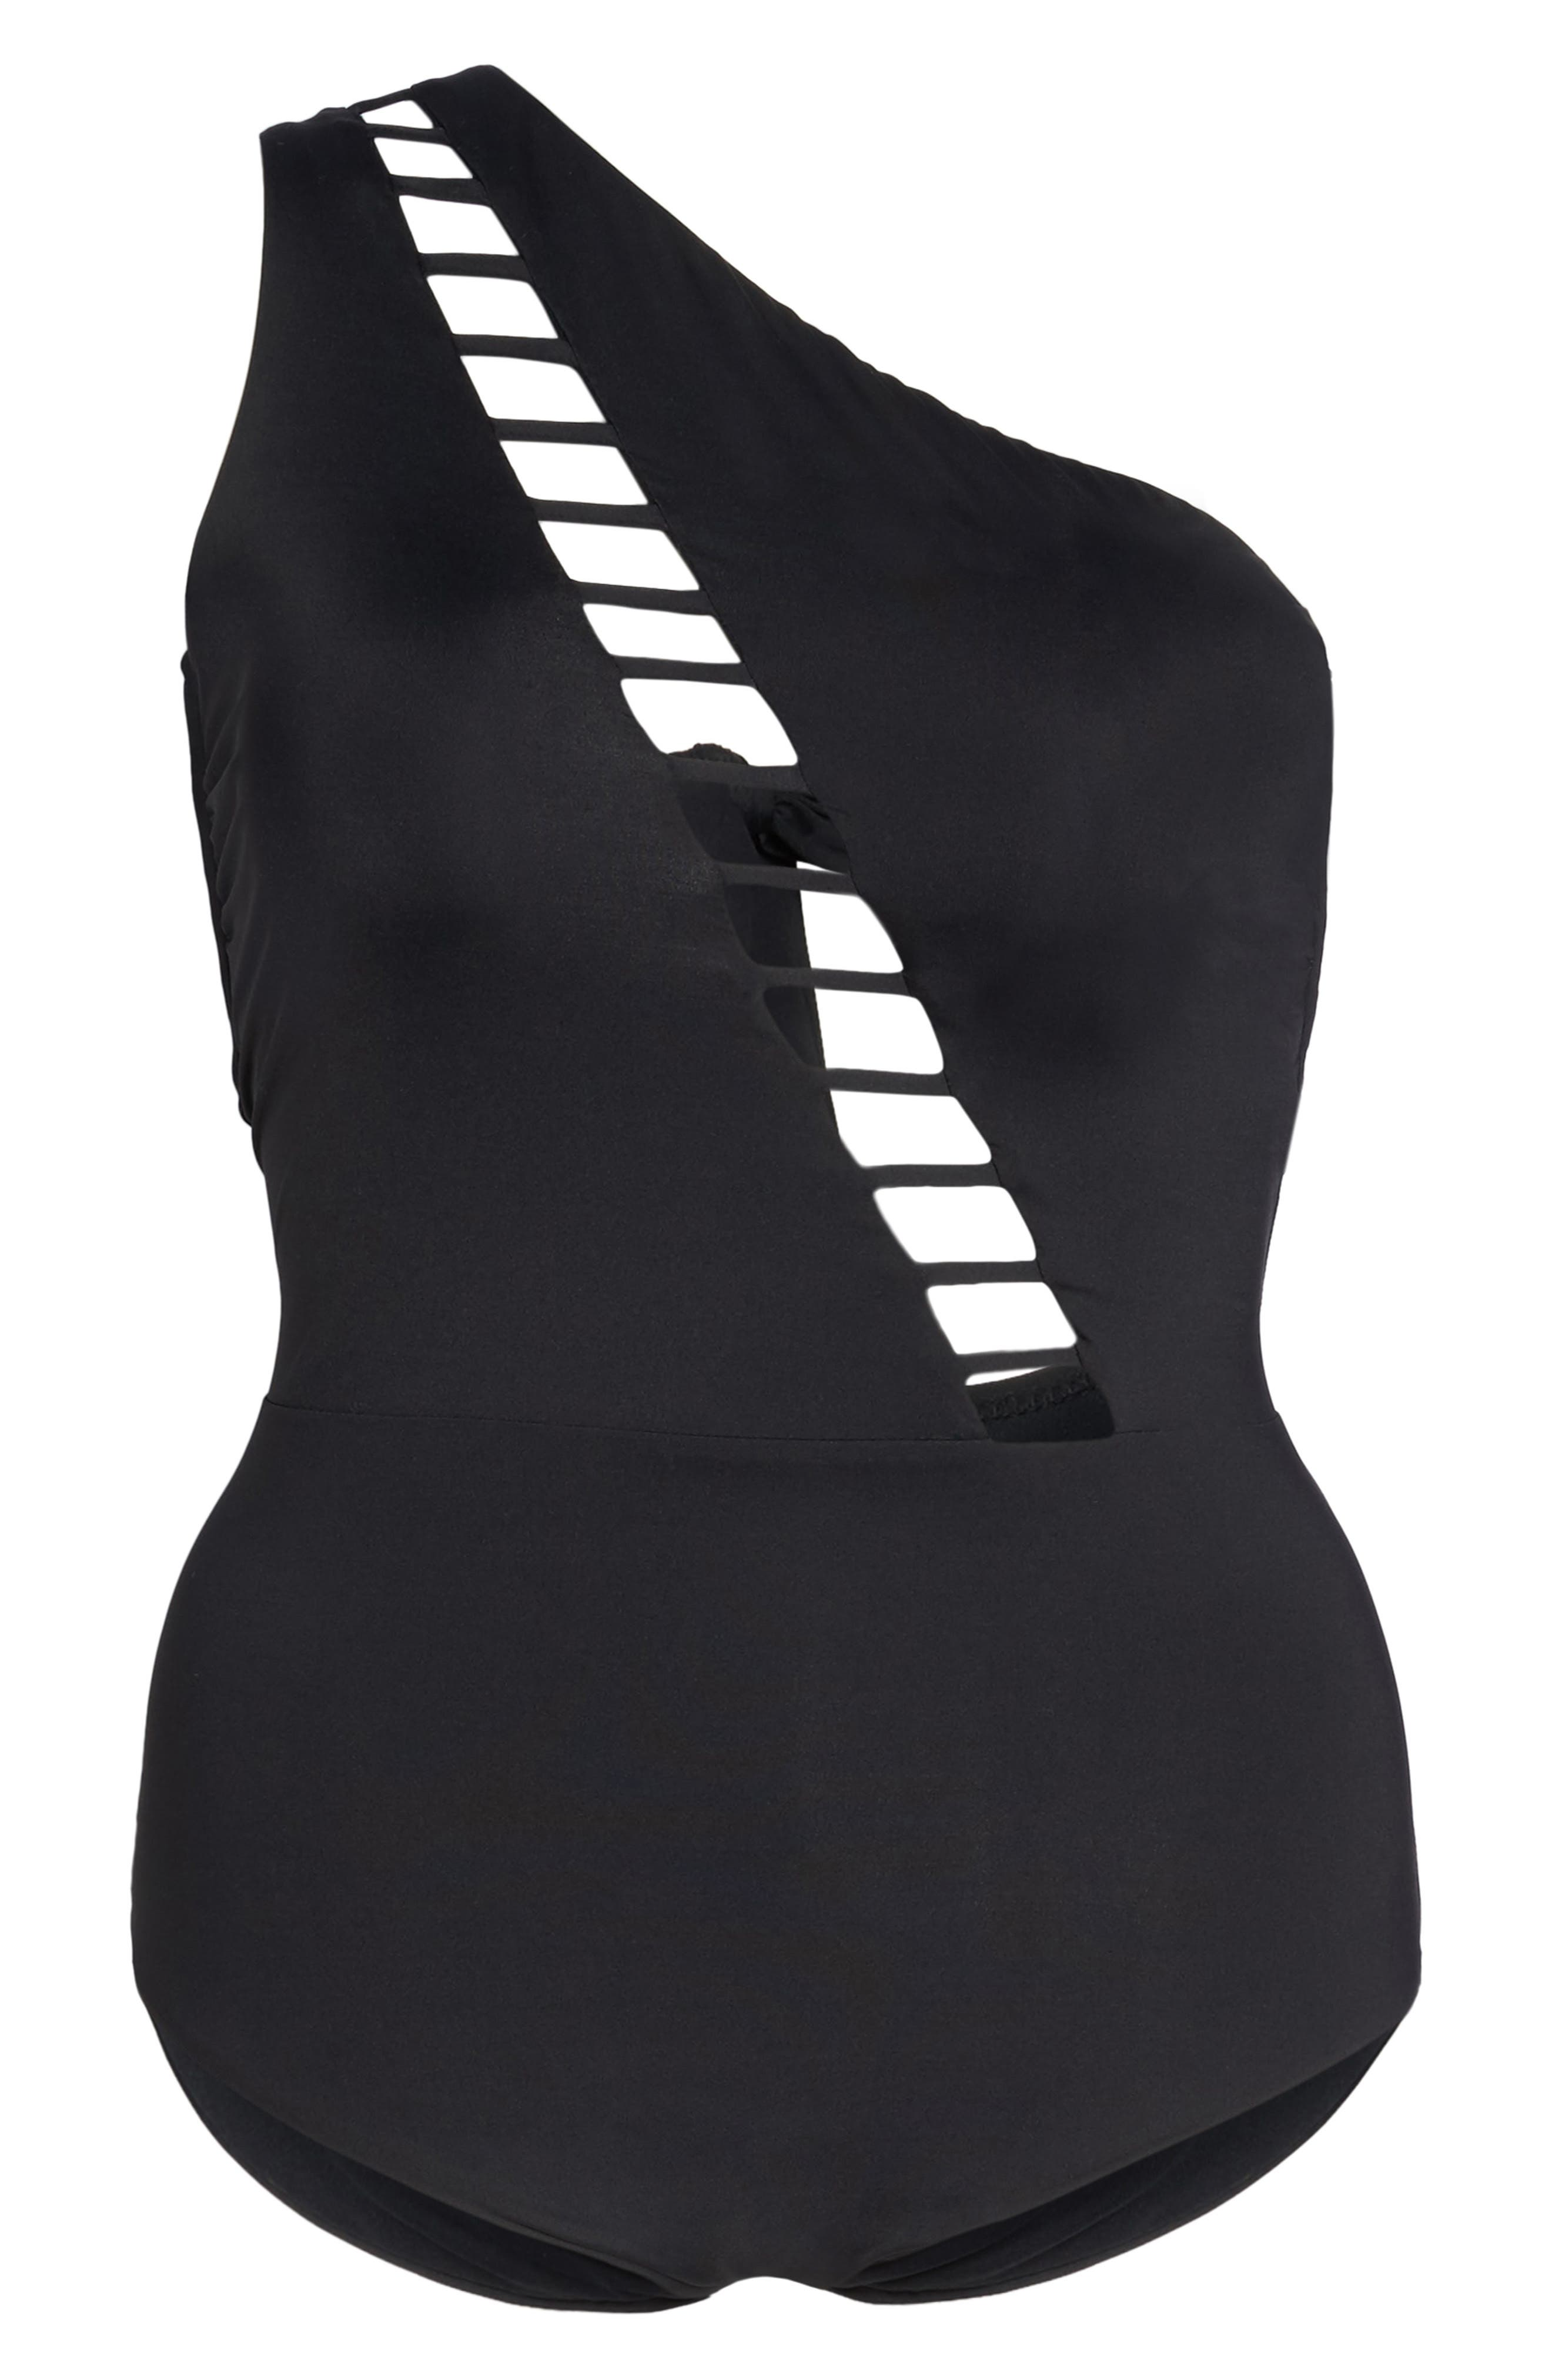 Becca Etc Making the Cut One-Piece Swimsuit,                             Alternate thumbnail 6, color,                             001